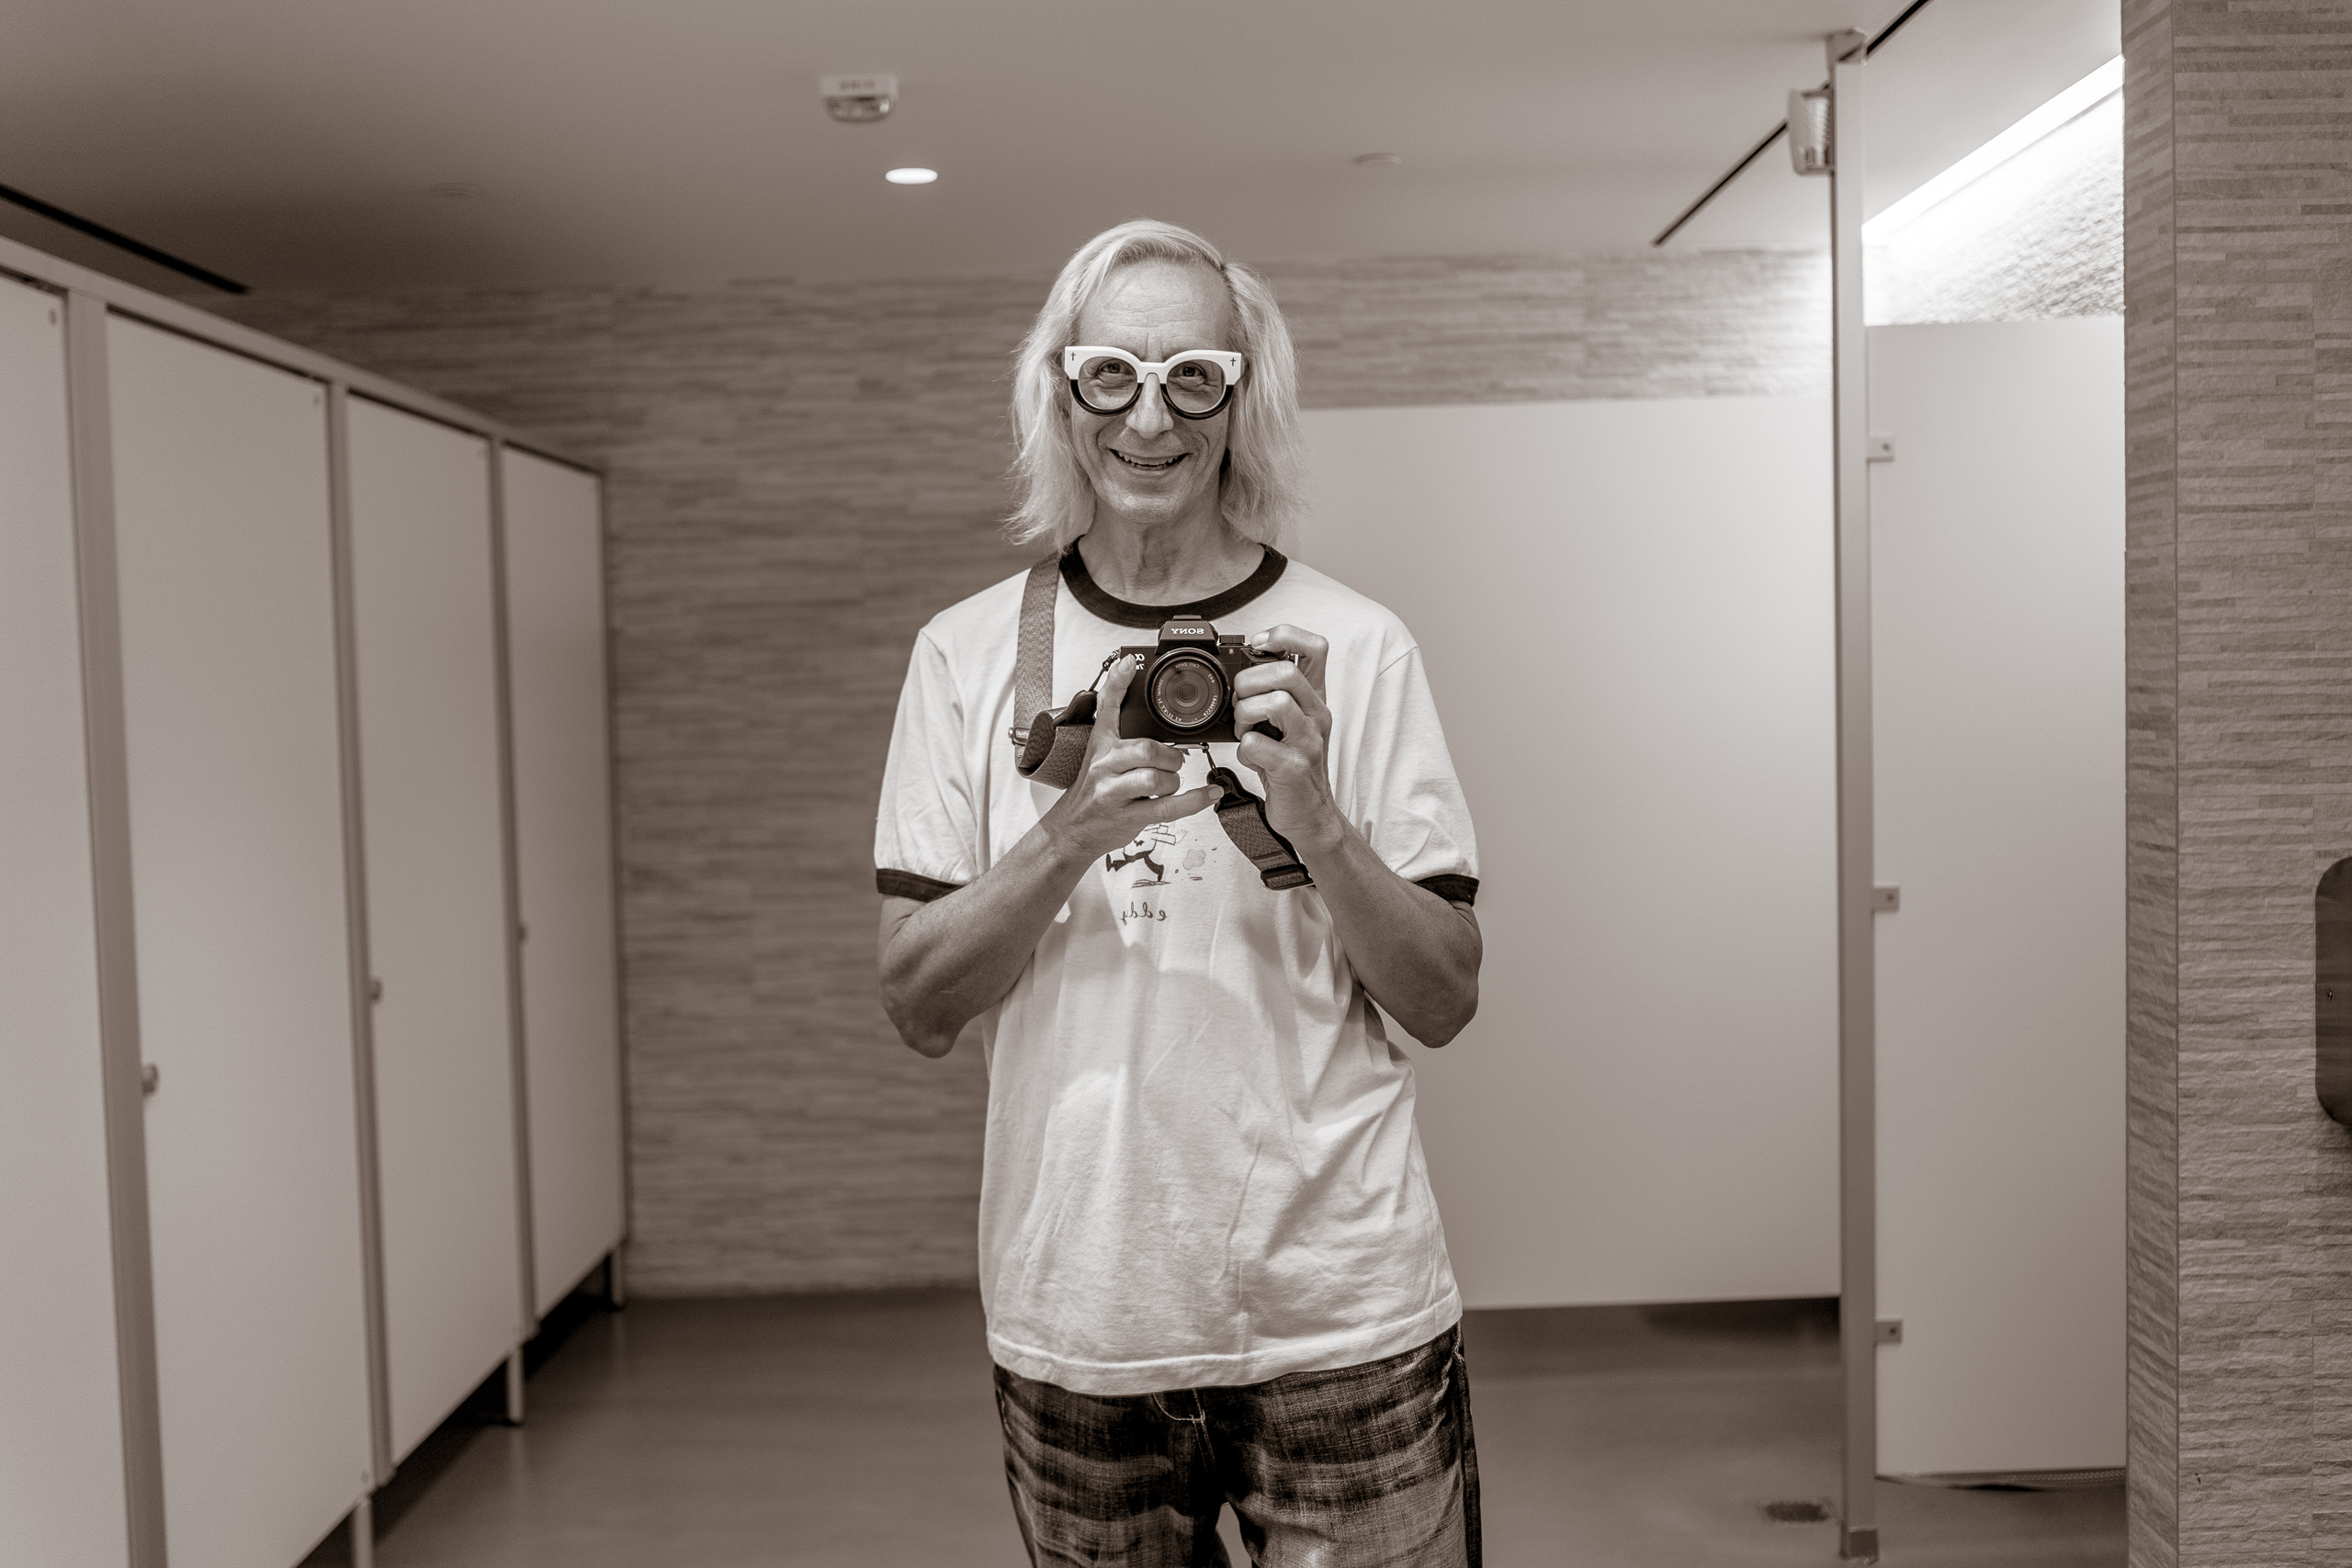 Glenn Zucman taking a selfie in the basement men's room at the Marciano Art Foundation on Wilshire Blvd in Los Angeles